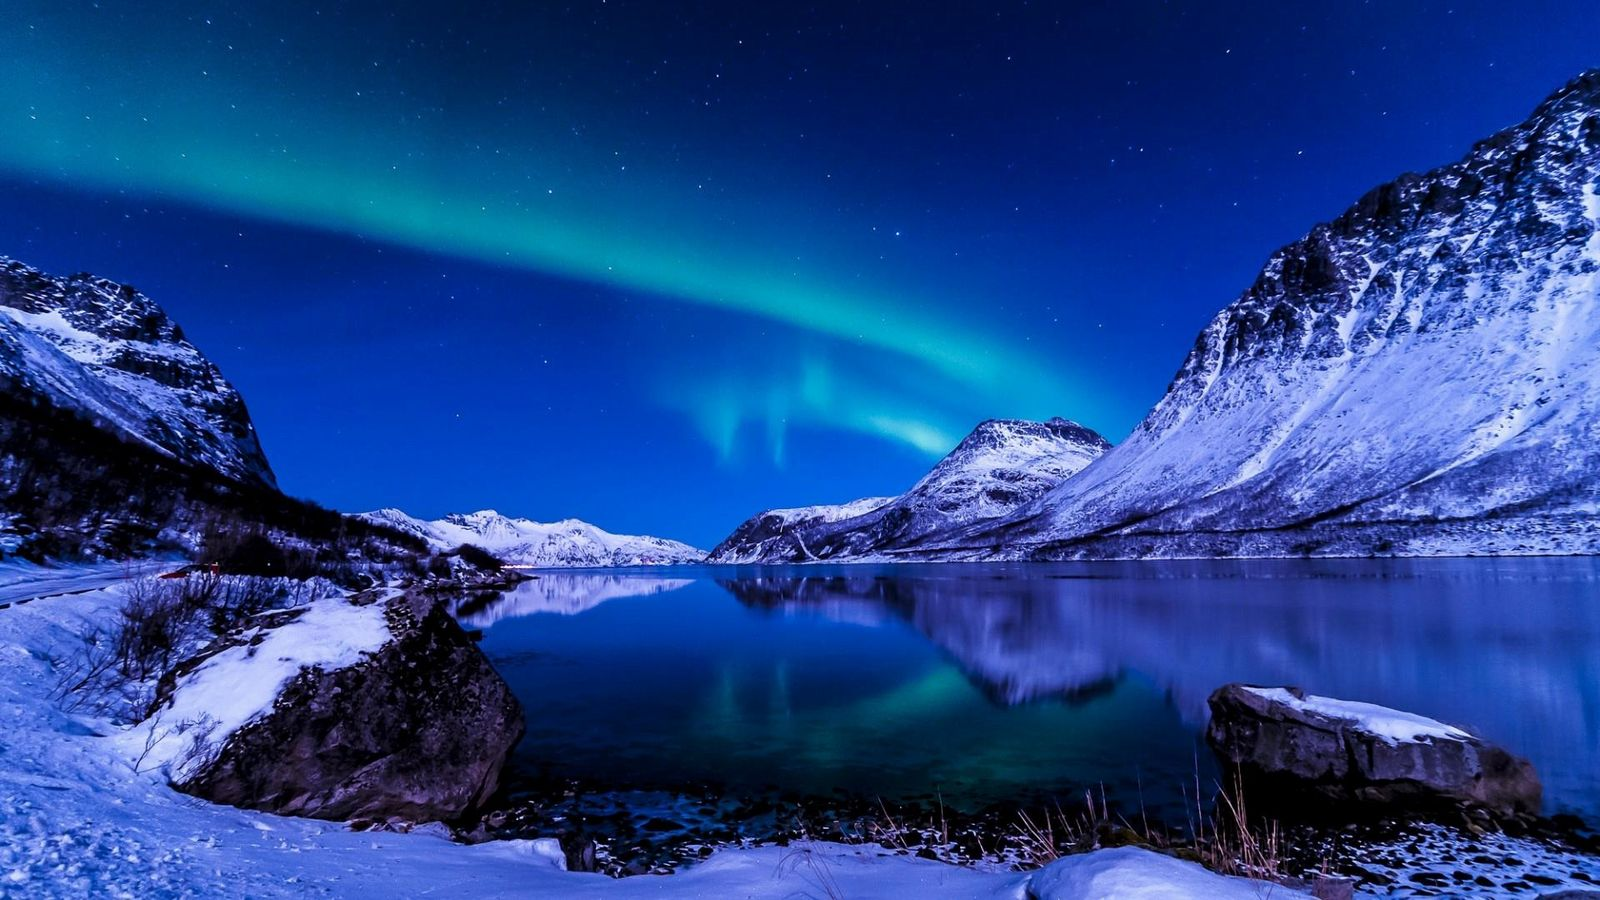 Chill Winter Night Wallpaper